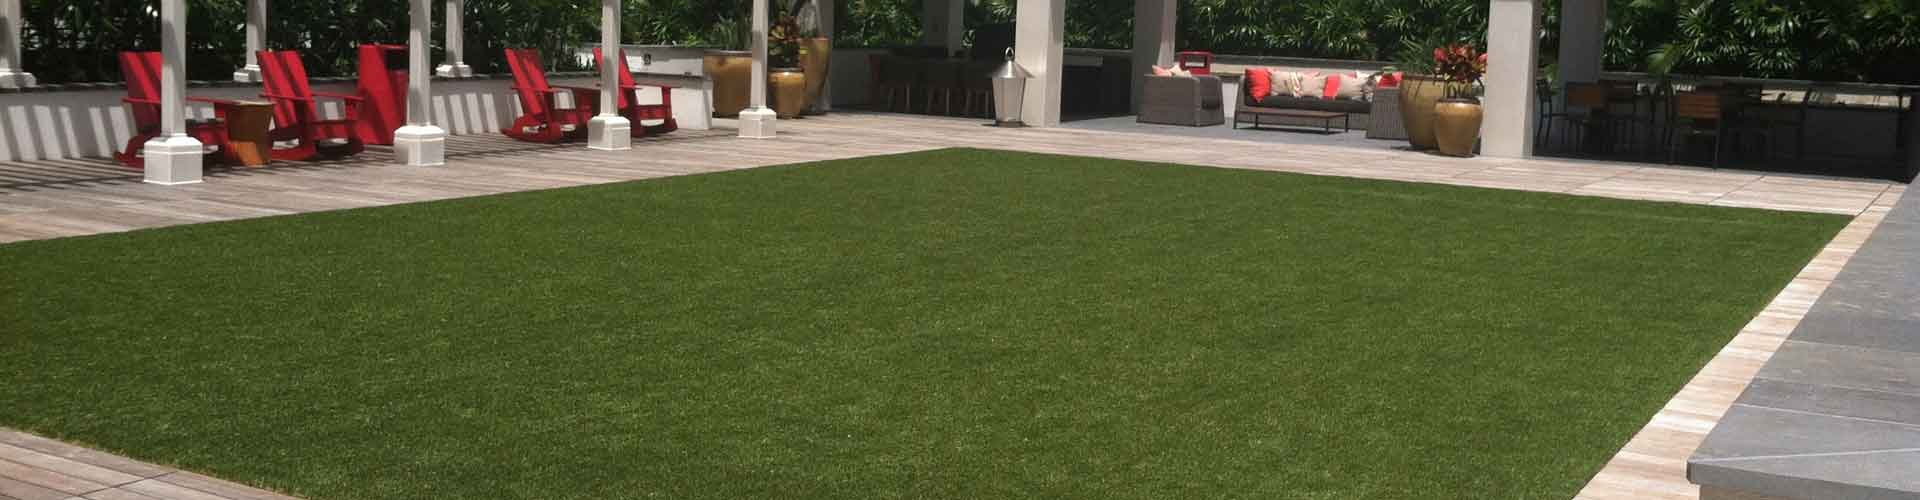 Artificial grass installation at Waihonua at Kewalo